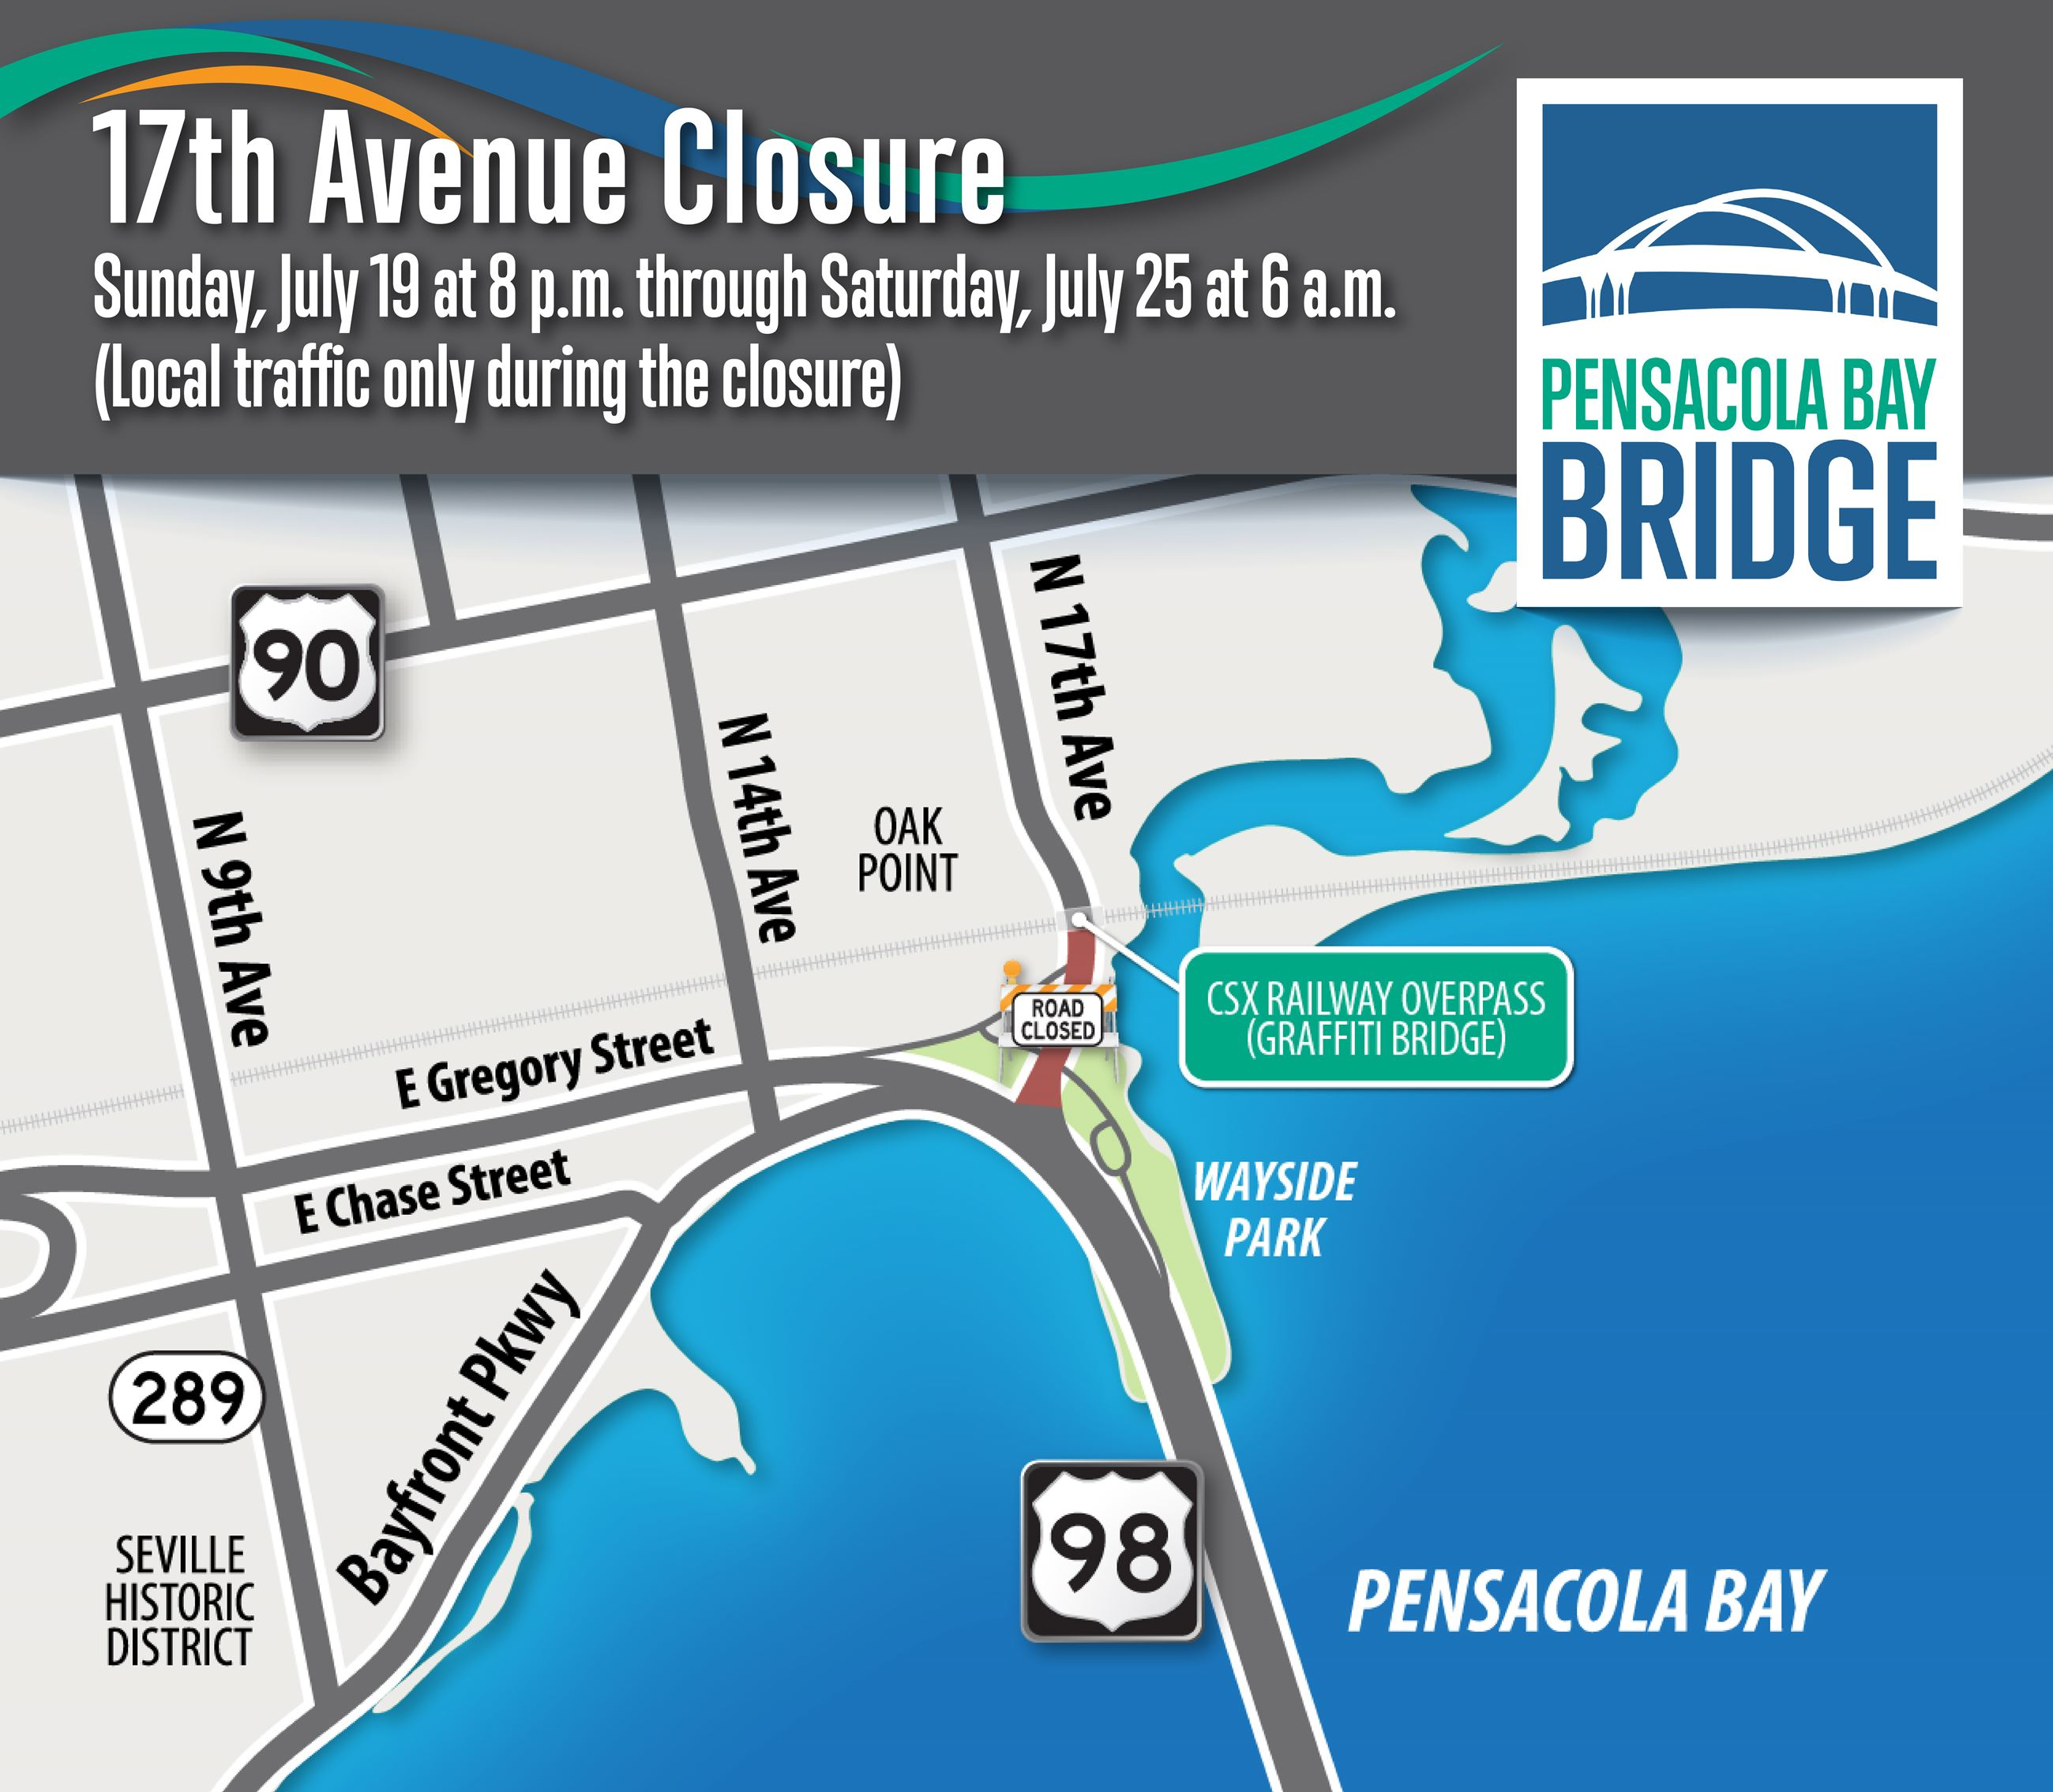 17th Avenue Closure July 19-25